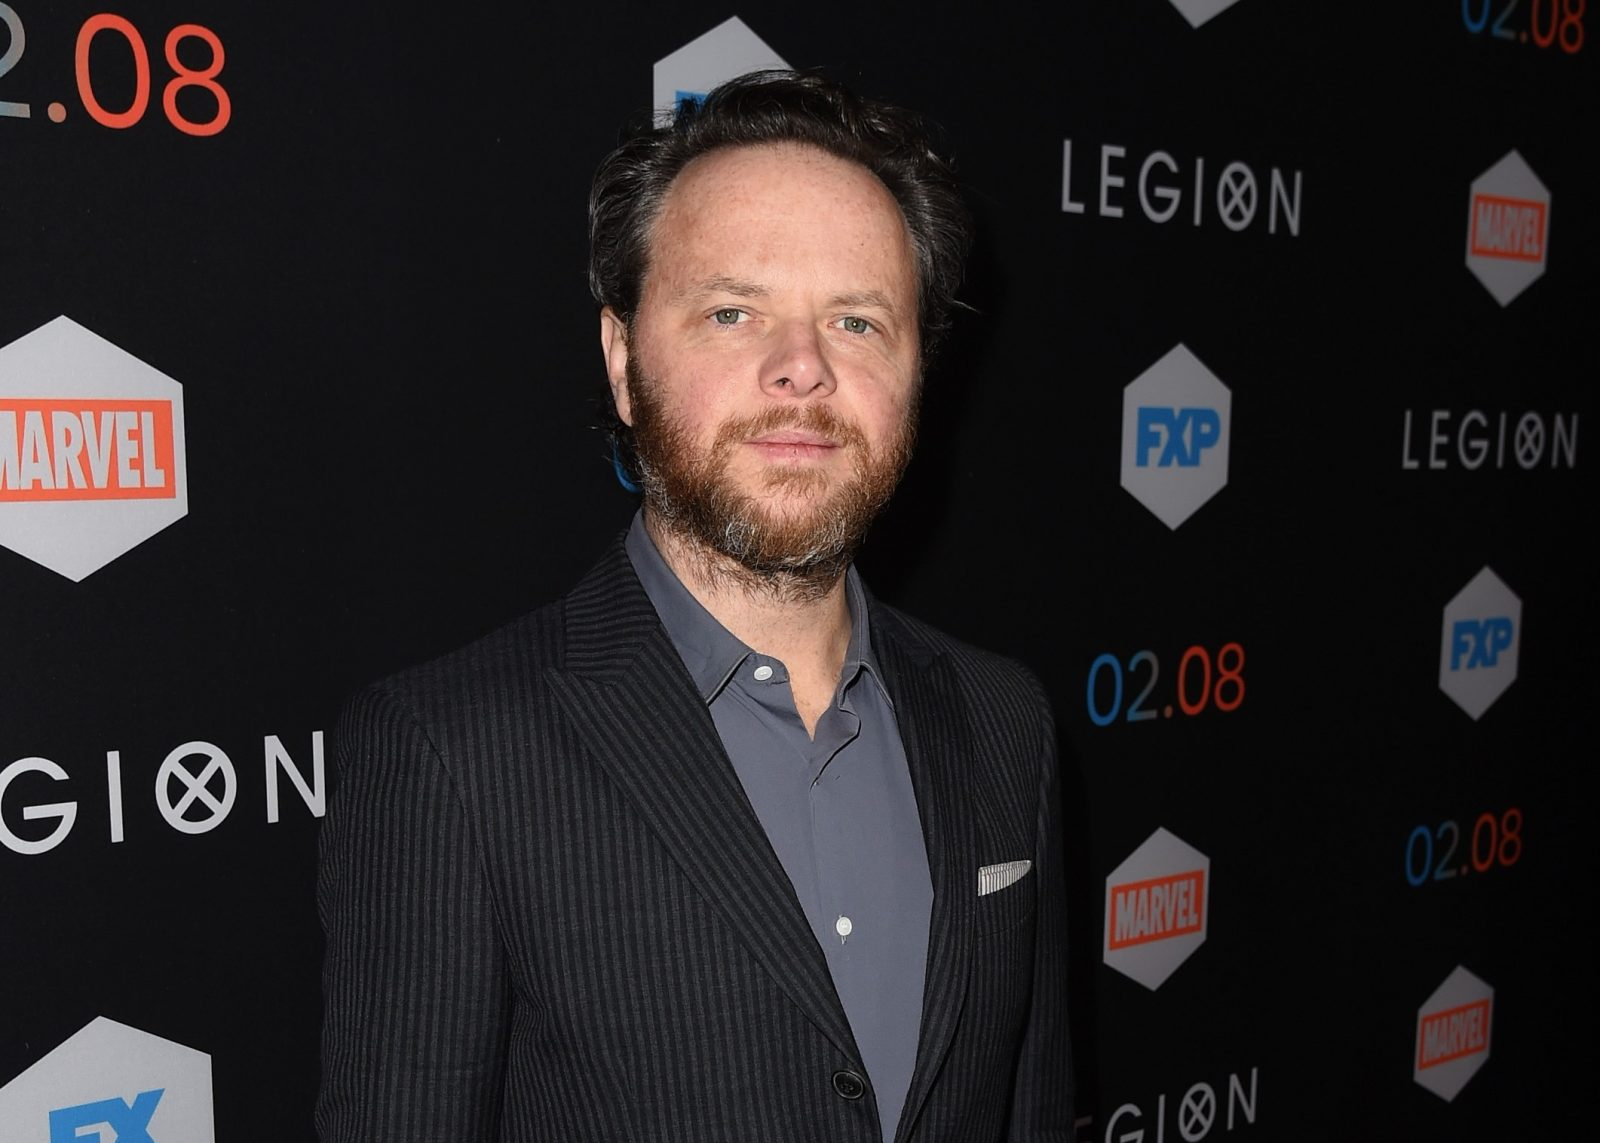 Creator/writer/director Noah Hawley arrives at the premiere of FX's 'Legion' last month in West Hollywood. (Kevin Winter/Getty Images